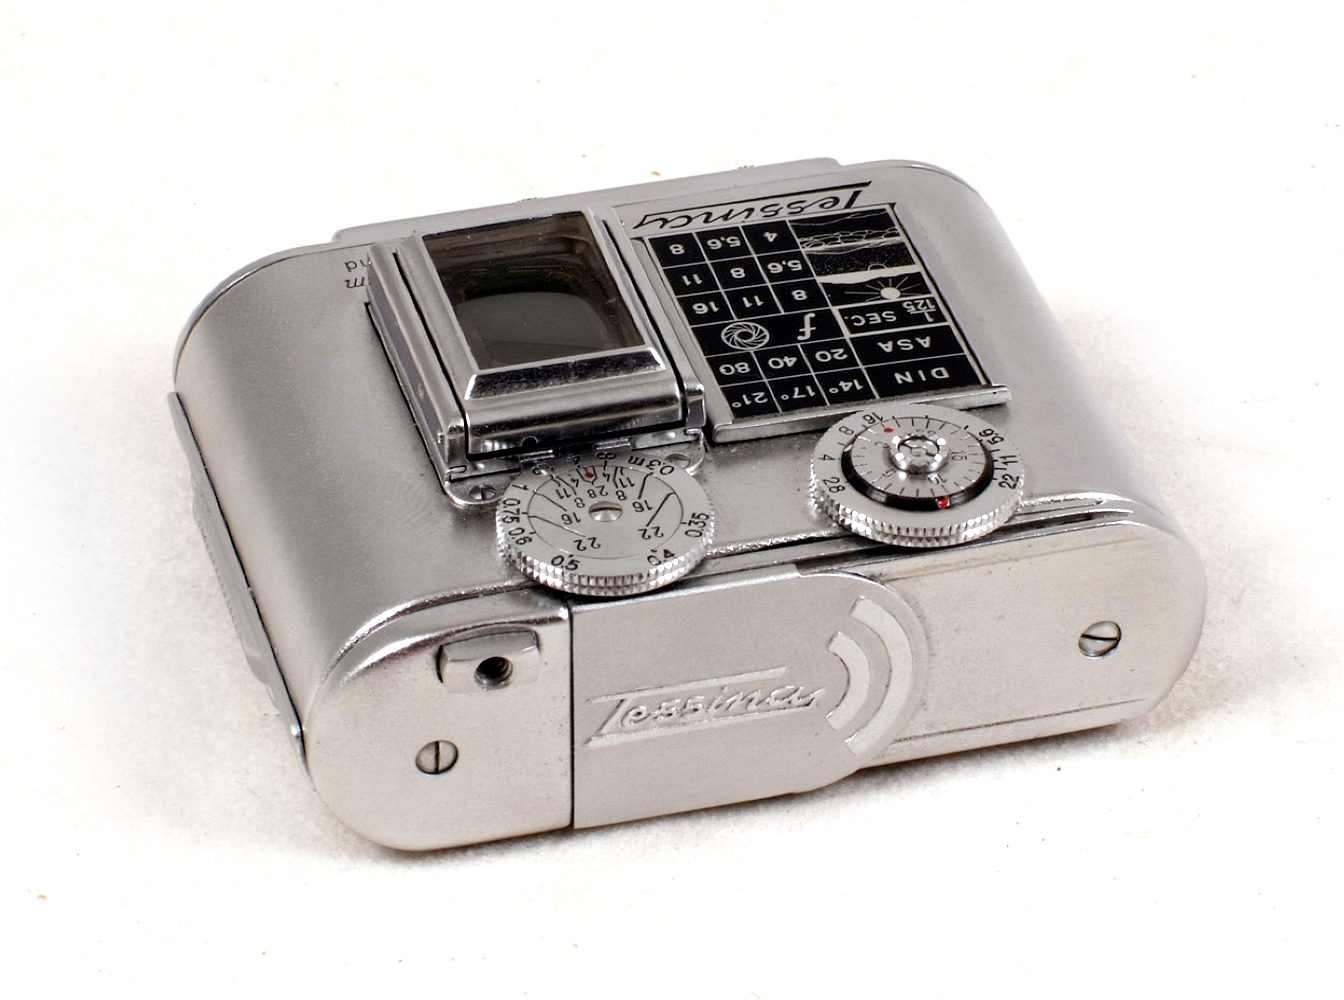 Lot 51 - Tessina Automatic 35mm Miniature Camera Outfit. #61336 (condition 5F).